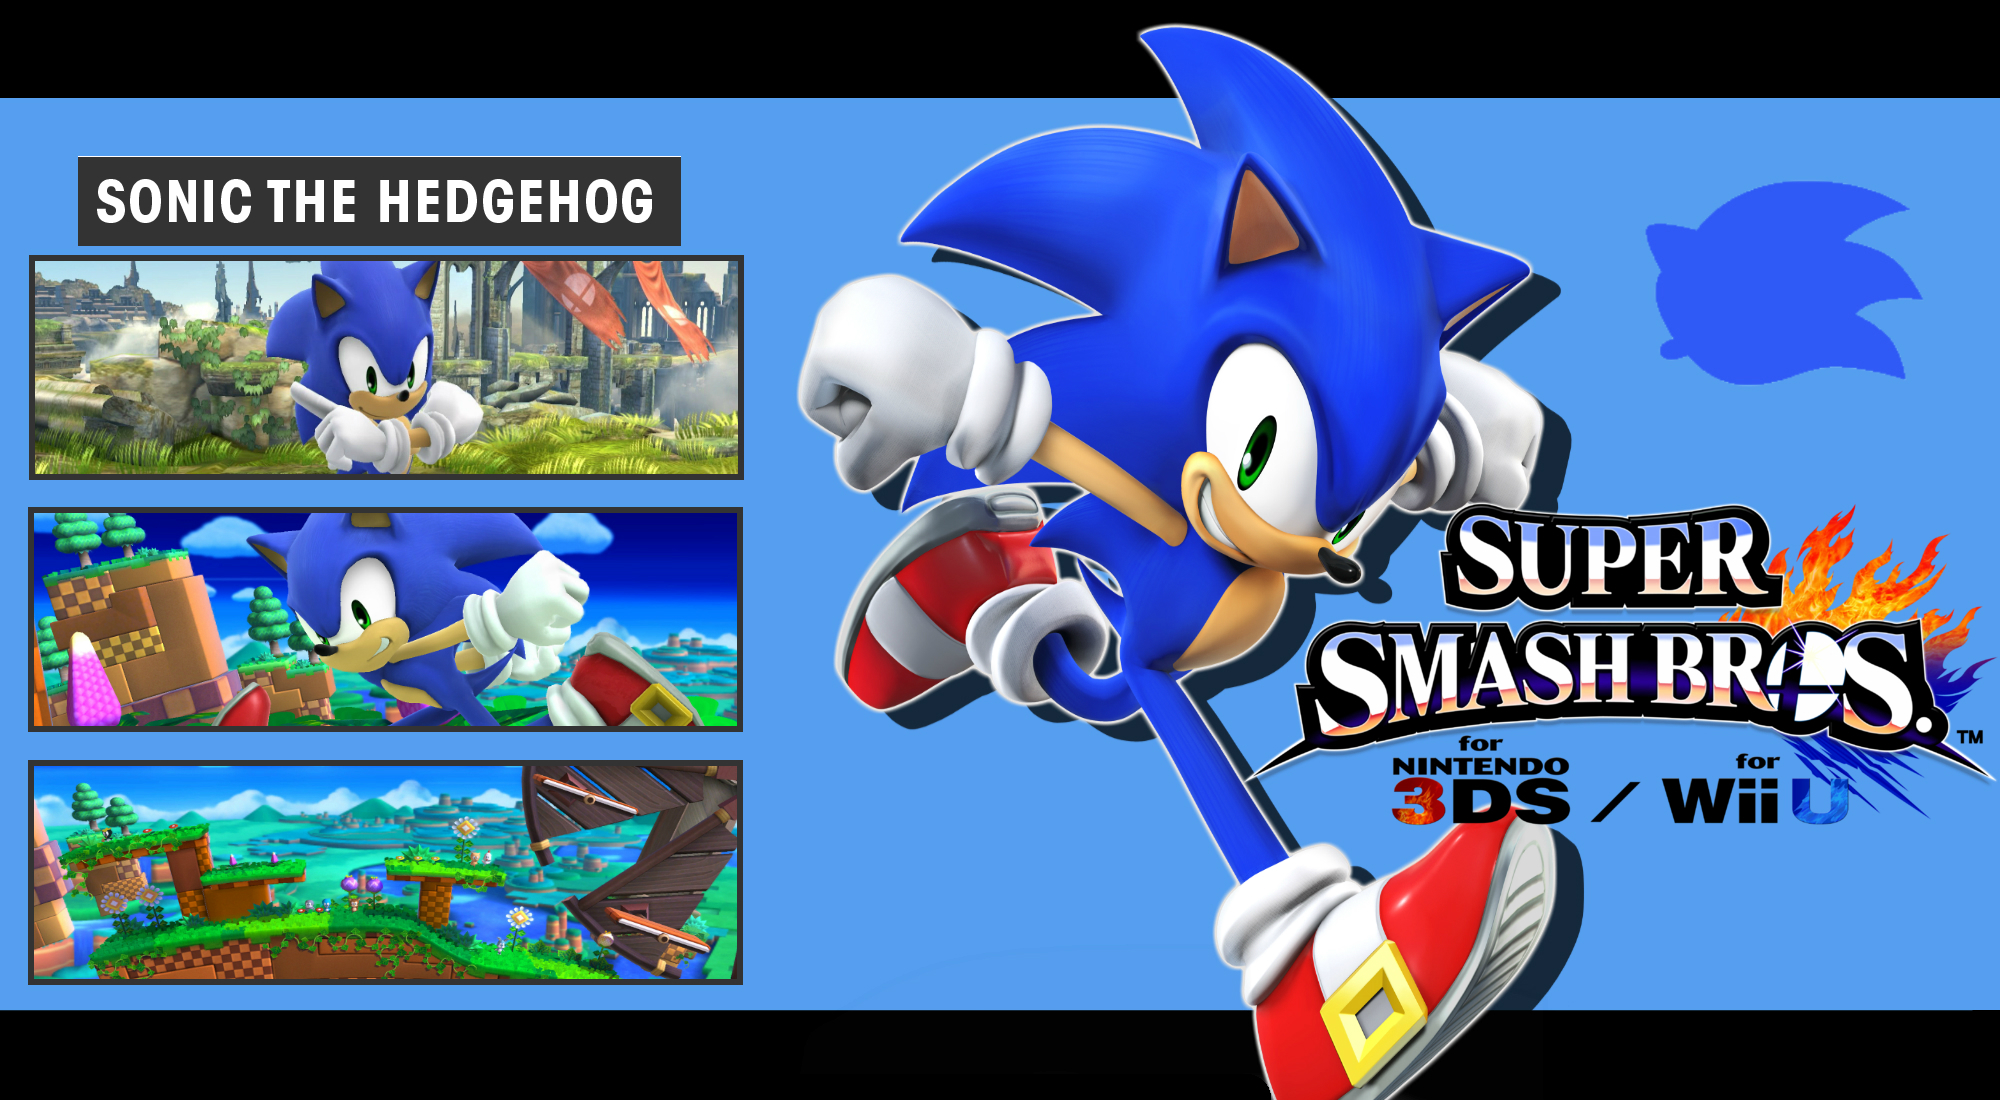 Super Smash Bros 3ds Wii U Sonic Wallpaper By Dakidgaming On